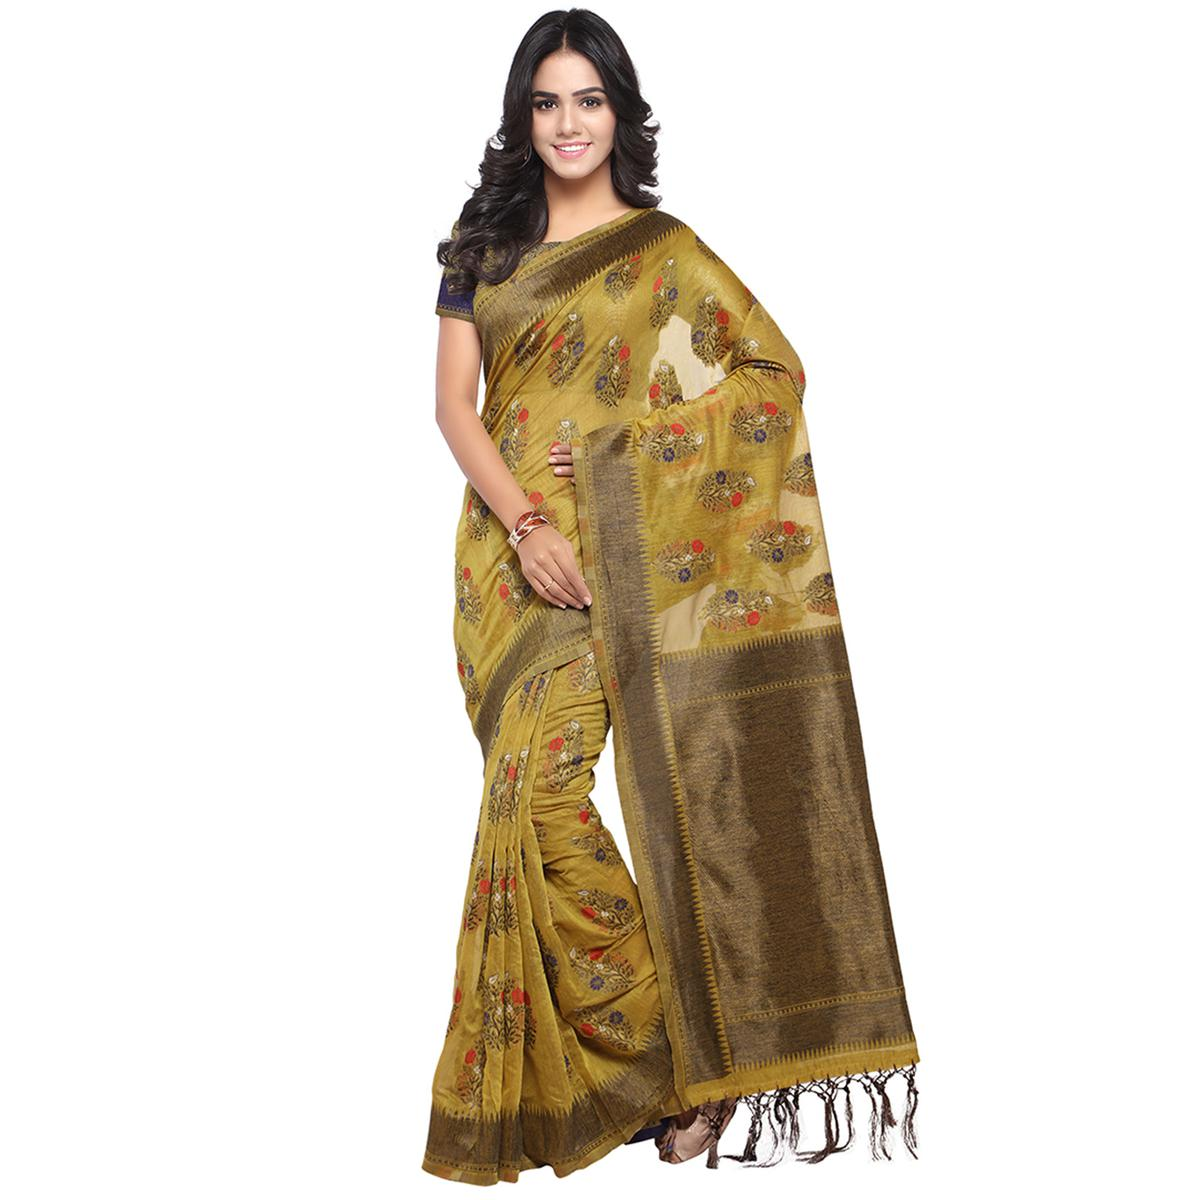 Bloom Brown Colored Embroidered Festive Wear Cotton Banarasi Saree